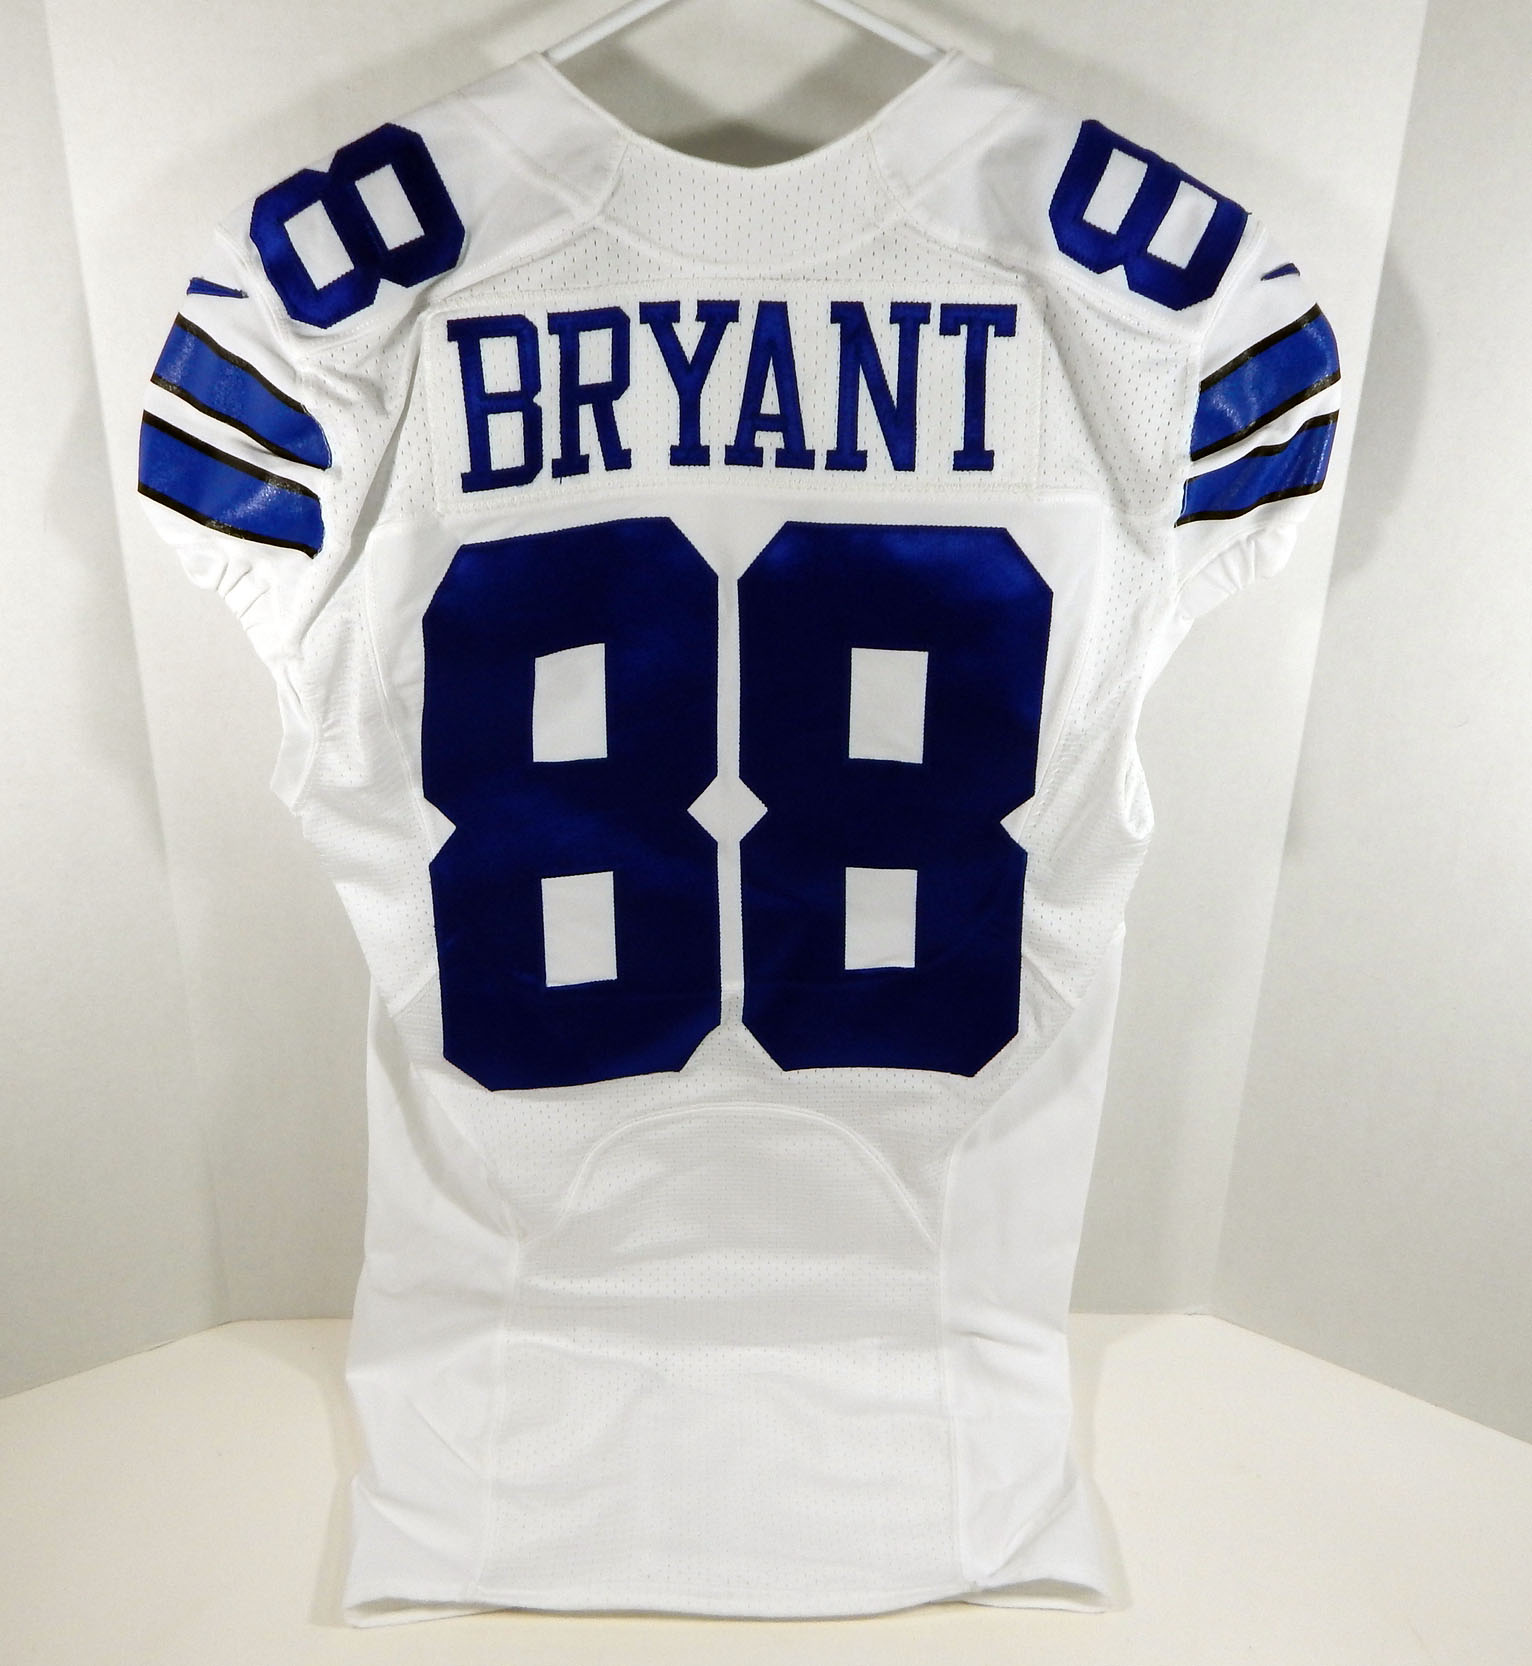 Details About 2015 Dallas Cowboys Dez Bryant 88 Game Issued White Jersey Dal00249